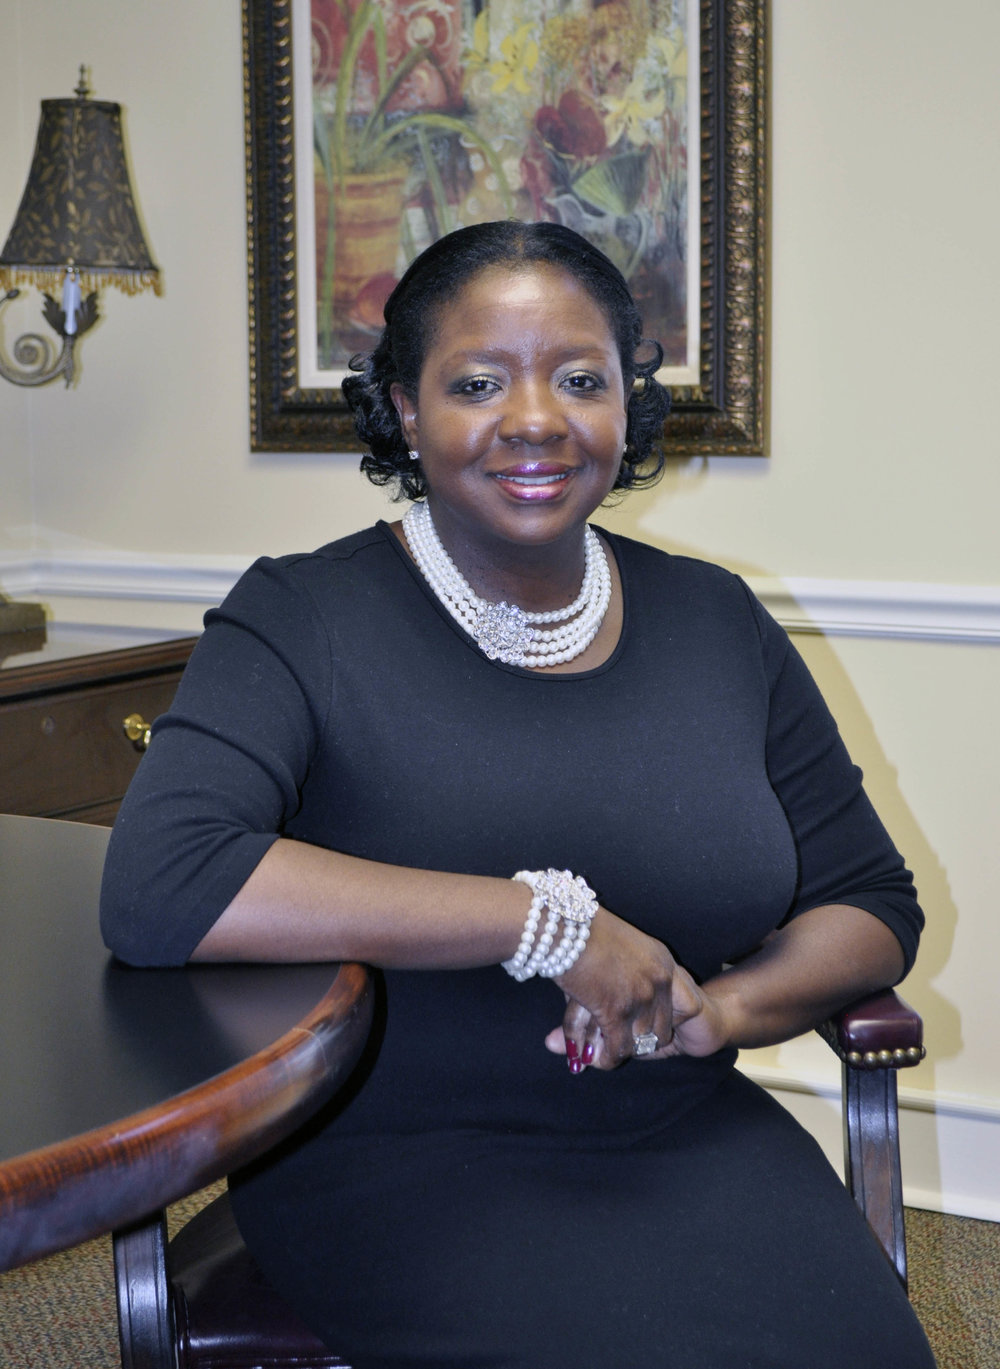 Dr. Regina Traylor, DHScExecutive Director - Dr. Regina Traylor, DHSc was named the Interim Executive Director of the Gift of Life Foundation January 2019. She holds a bachelor's in registered nursing from the University of Alabama Birmingham, master's in nursing from Troy State University Montgomery and a doctorate in health science from Nova Southeastern University. She and her husband James Traylor are the proud parents of four children.